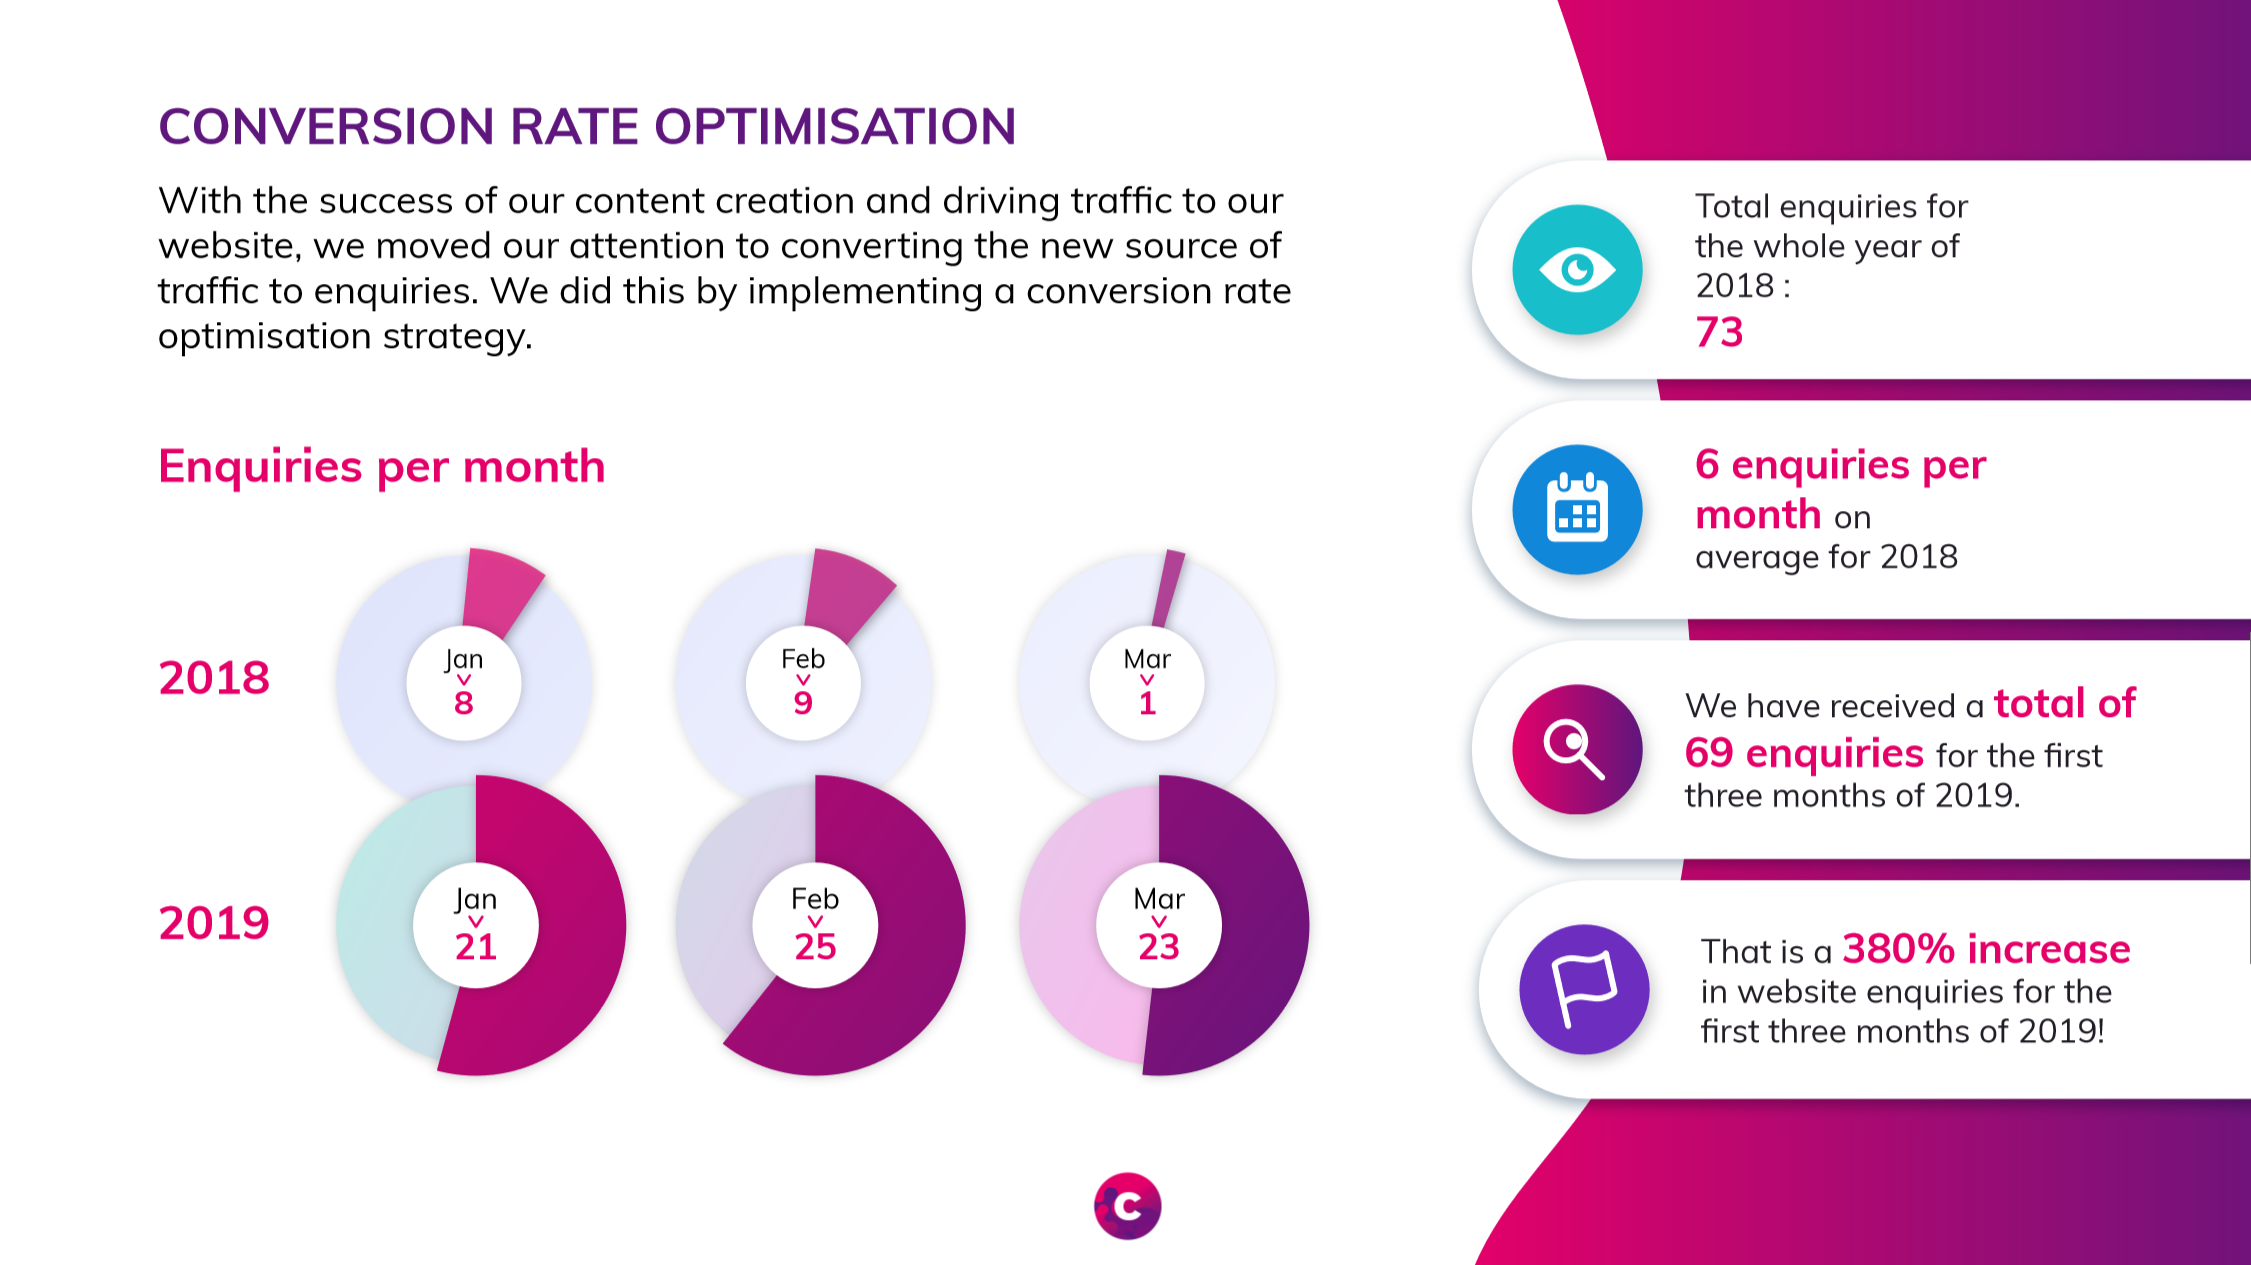 Conversion Rate Optimisation - Digital Marketing Agency - Cude Design